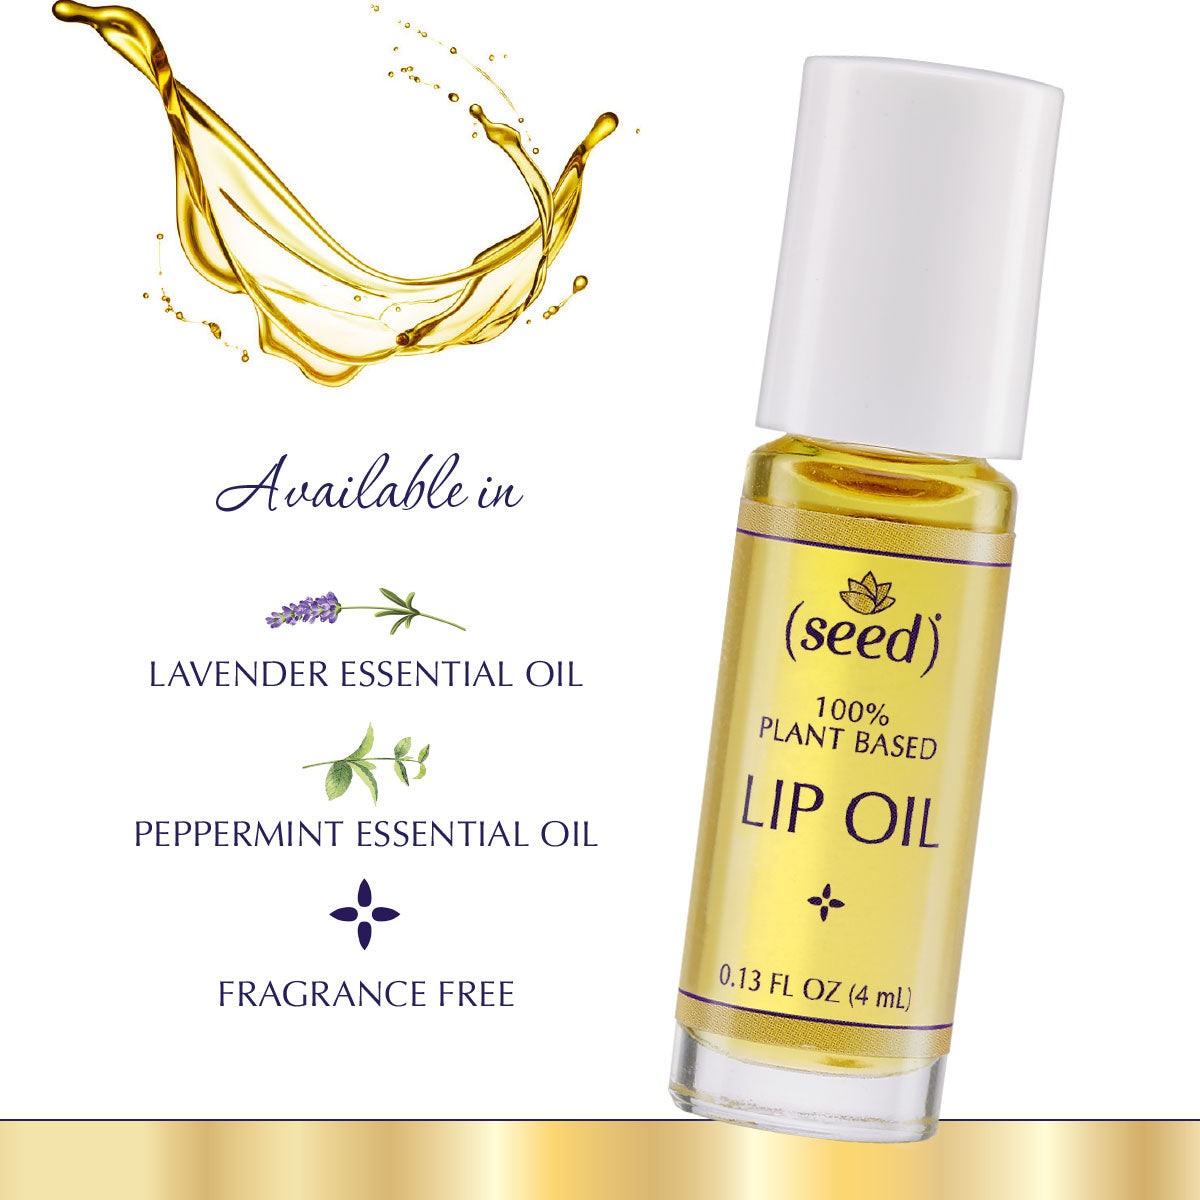 Seed Lip Oils in Fragrance Free Lavender or Peppermint